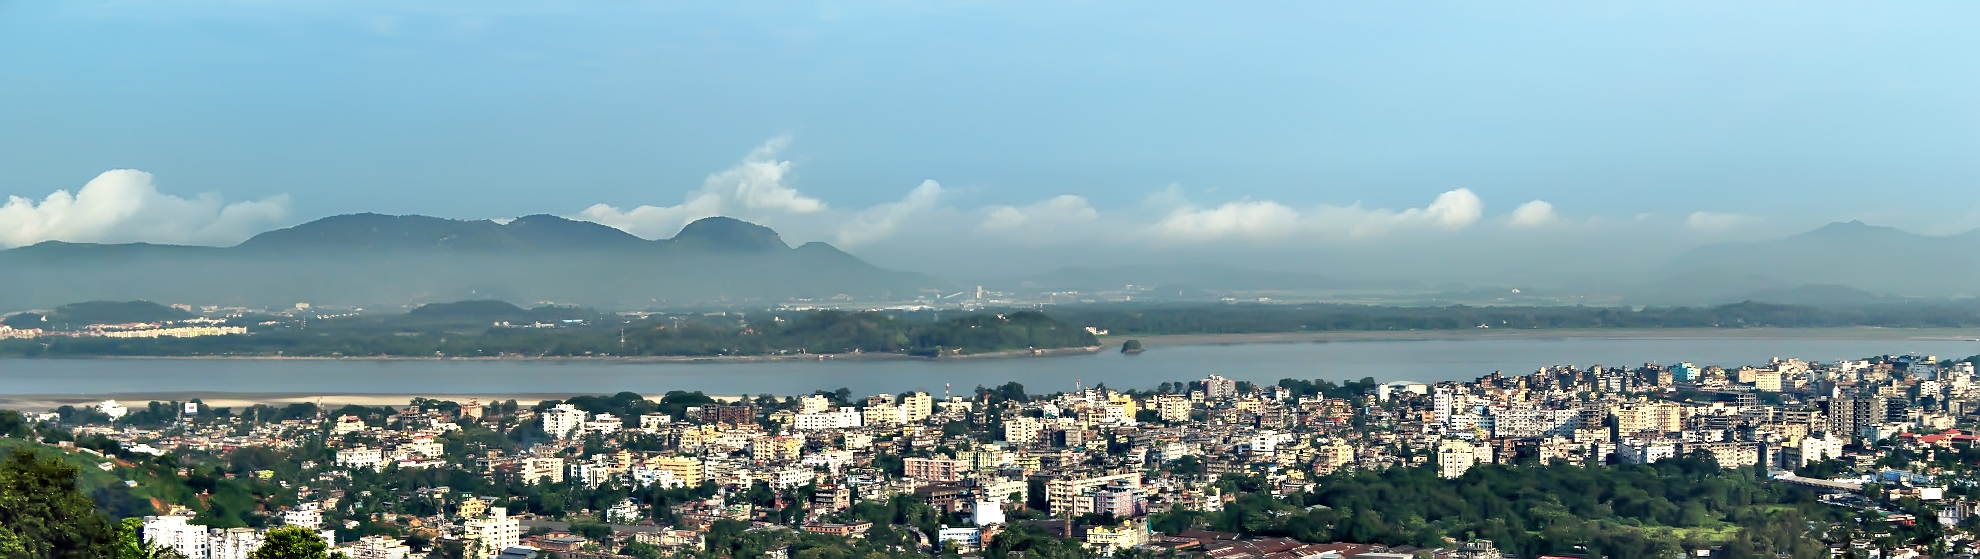 Panoramic view of Guwahati, Assam, India.